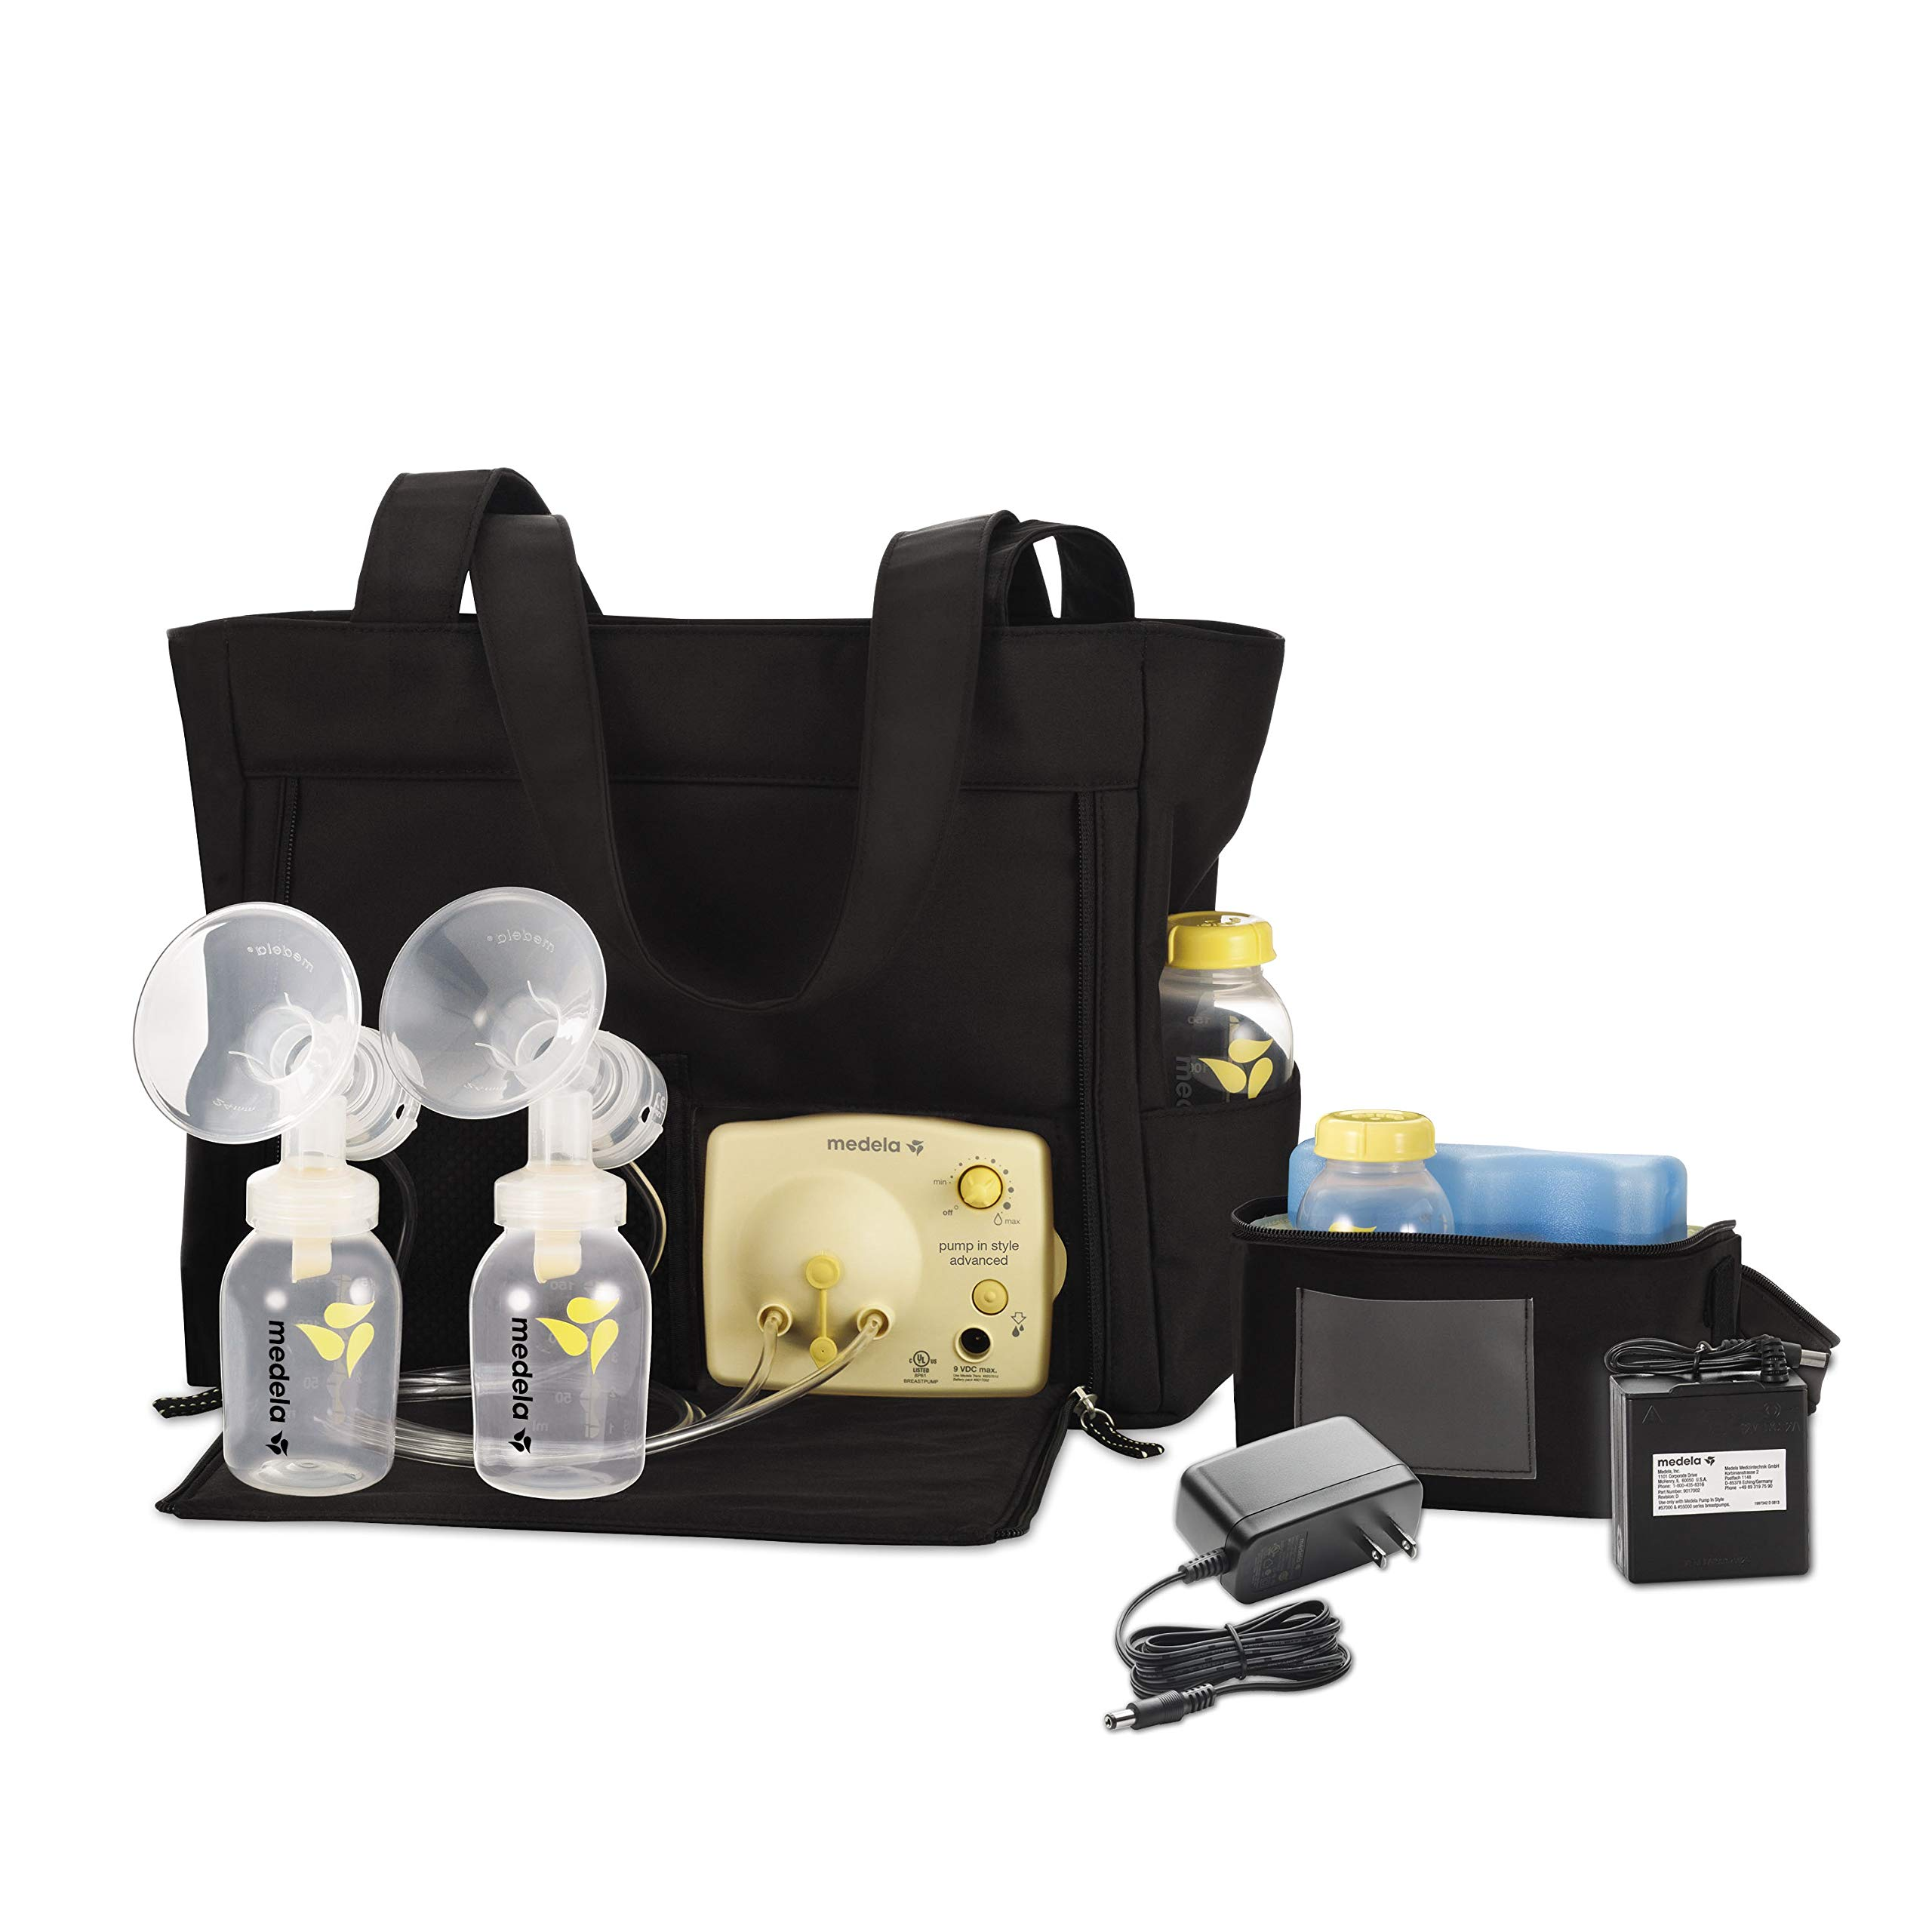 Medela Pump in Style Advanced with Tote, Electric Breast Pump for Double Pumping, Portable Battery Pack, Adjustable Speed and Vacuum, International Adapter, Built-In Bottle Holders by Medela